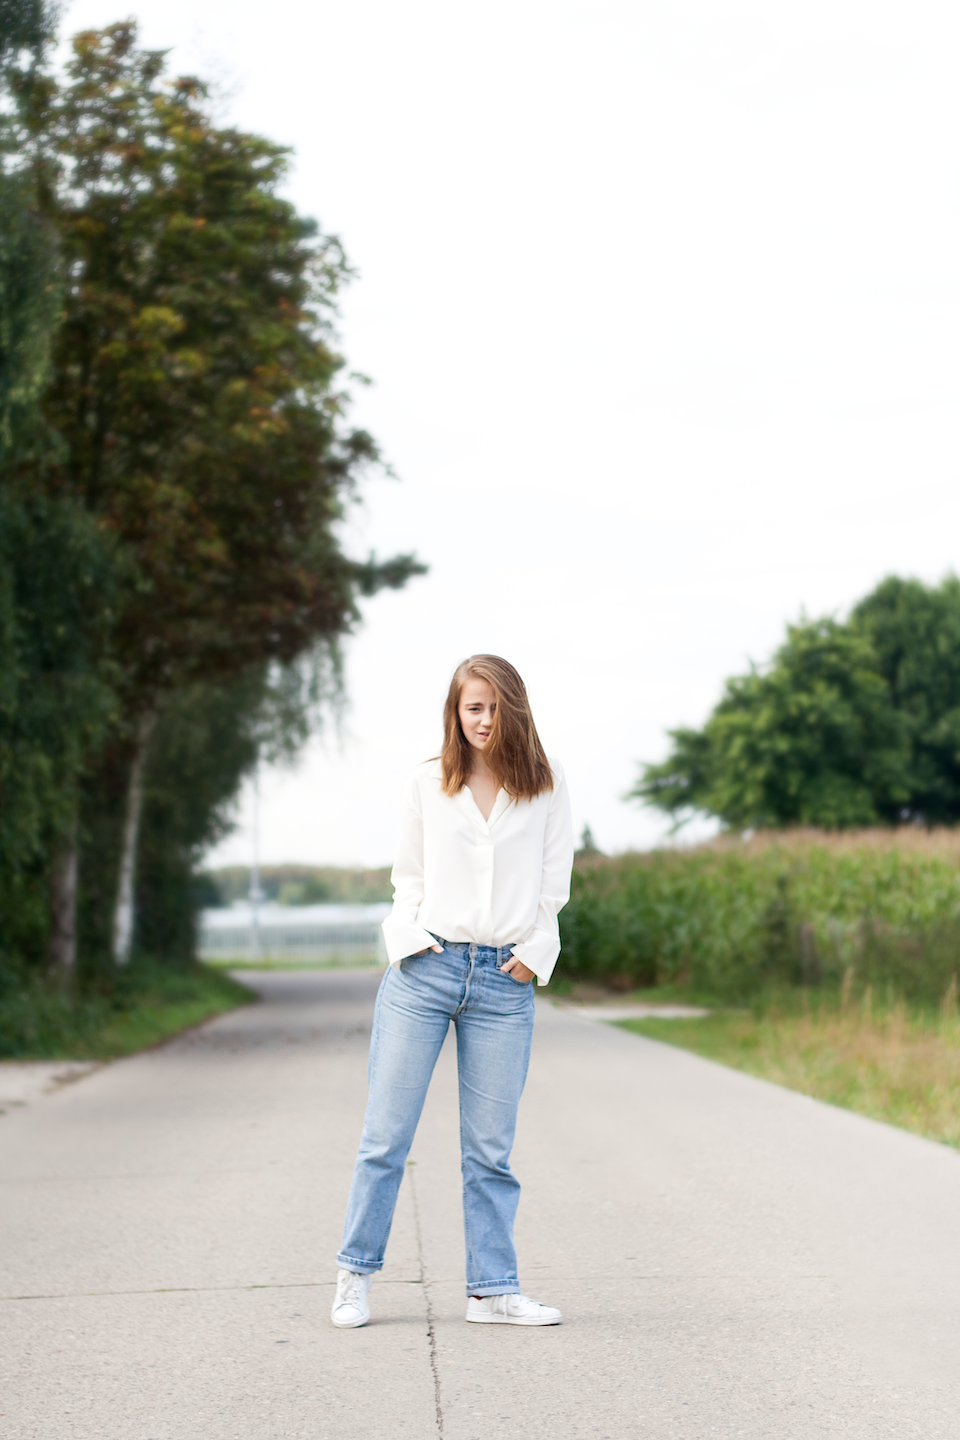 Levi's, ootd, We, We fashion , white blouse, jeans, 501, Vintage, outfit